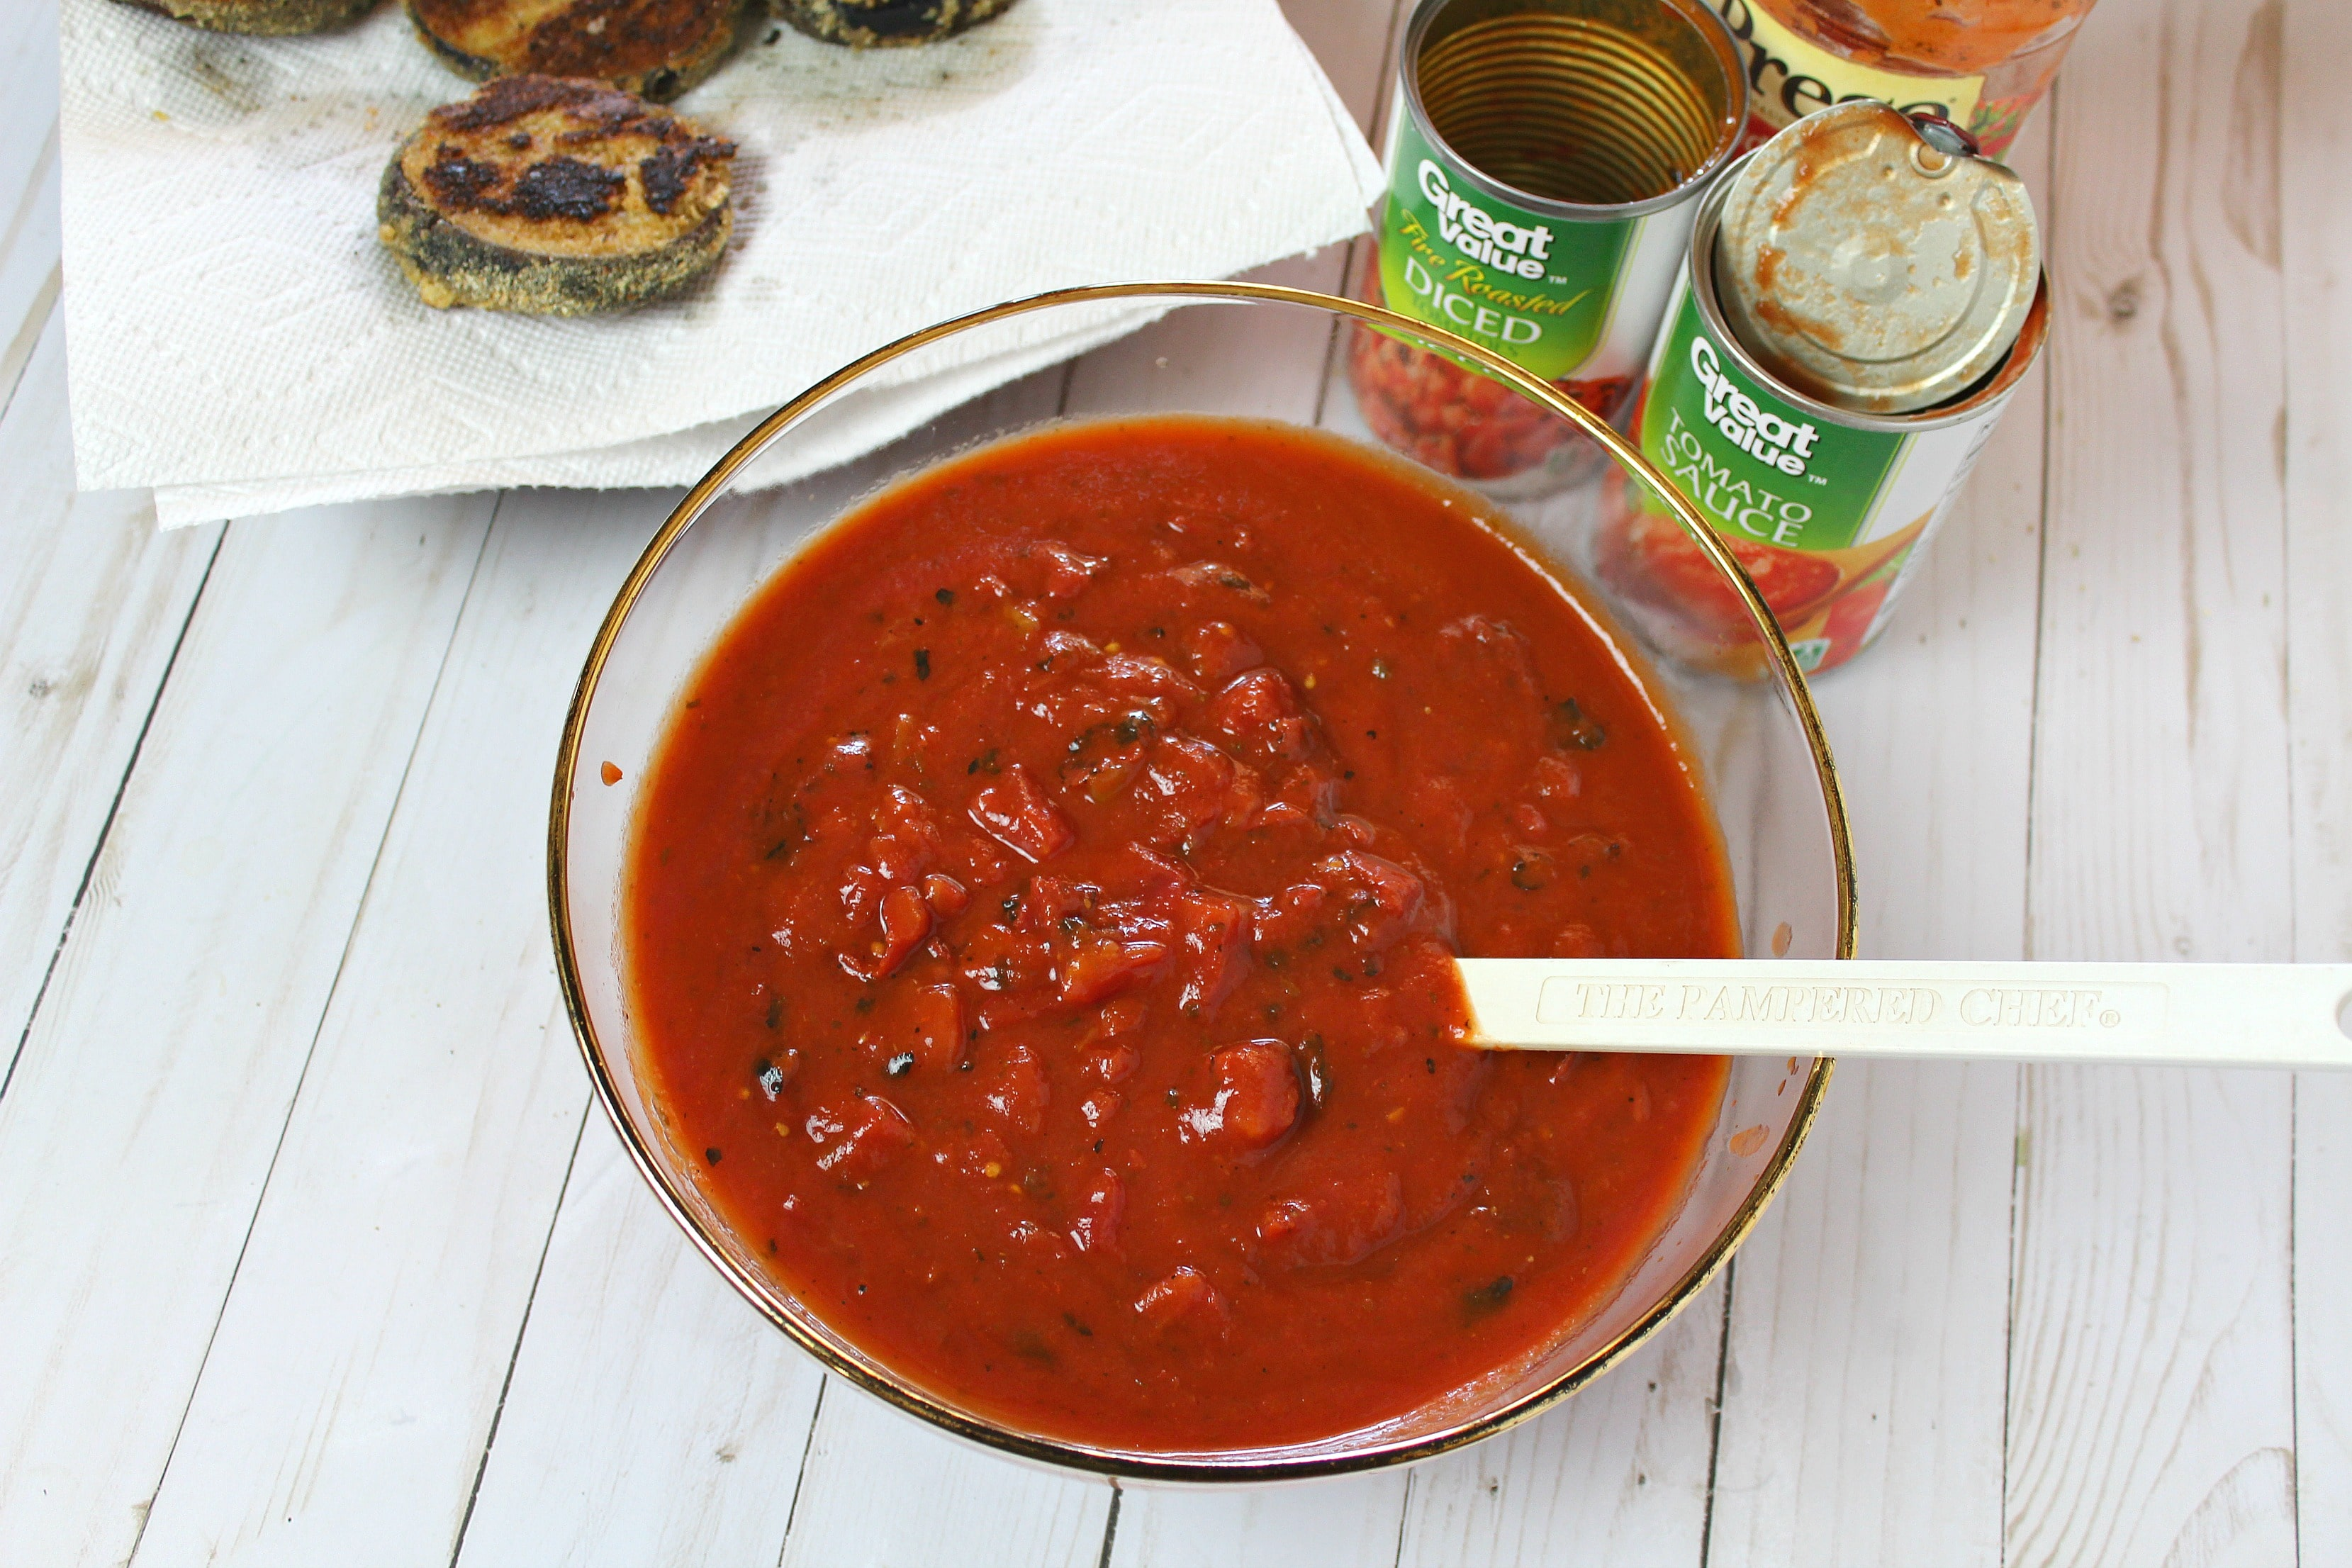 Mix spaghetti sauce, tomato sauce & diced tomatoes in bowl.